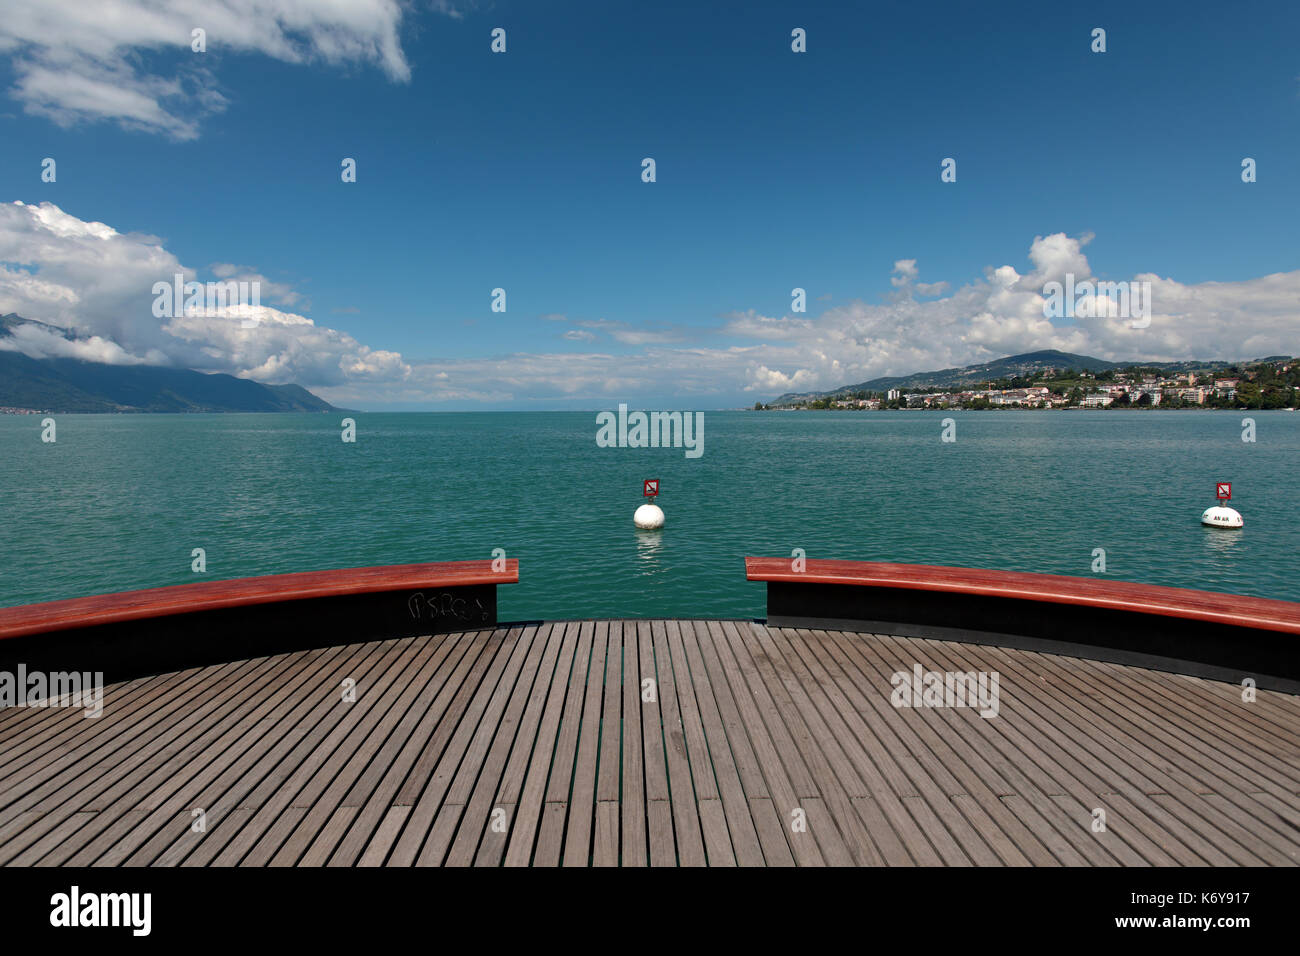 The Platform Sur Mer looks out over Lake Geneva in Montreux Switzerland in the Alps. It is right next to the statue - Stock Image